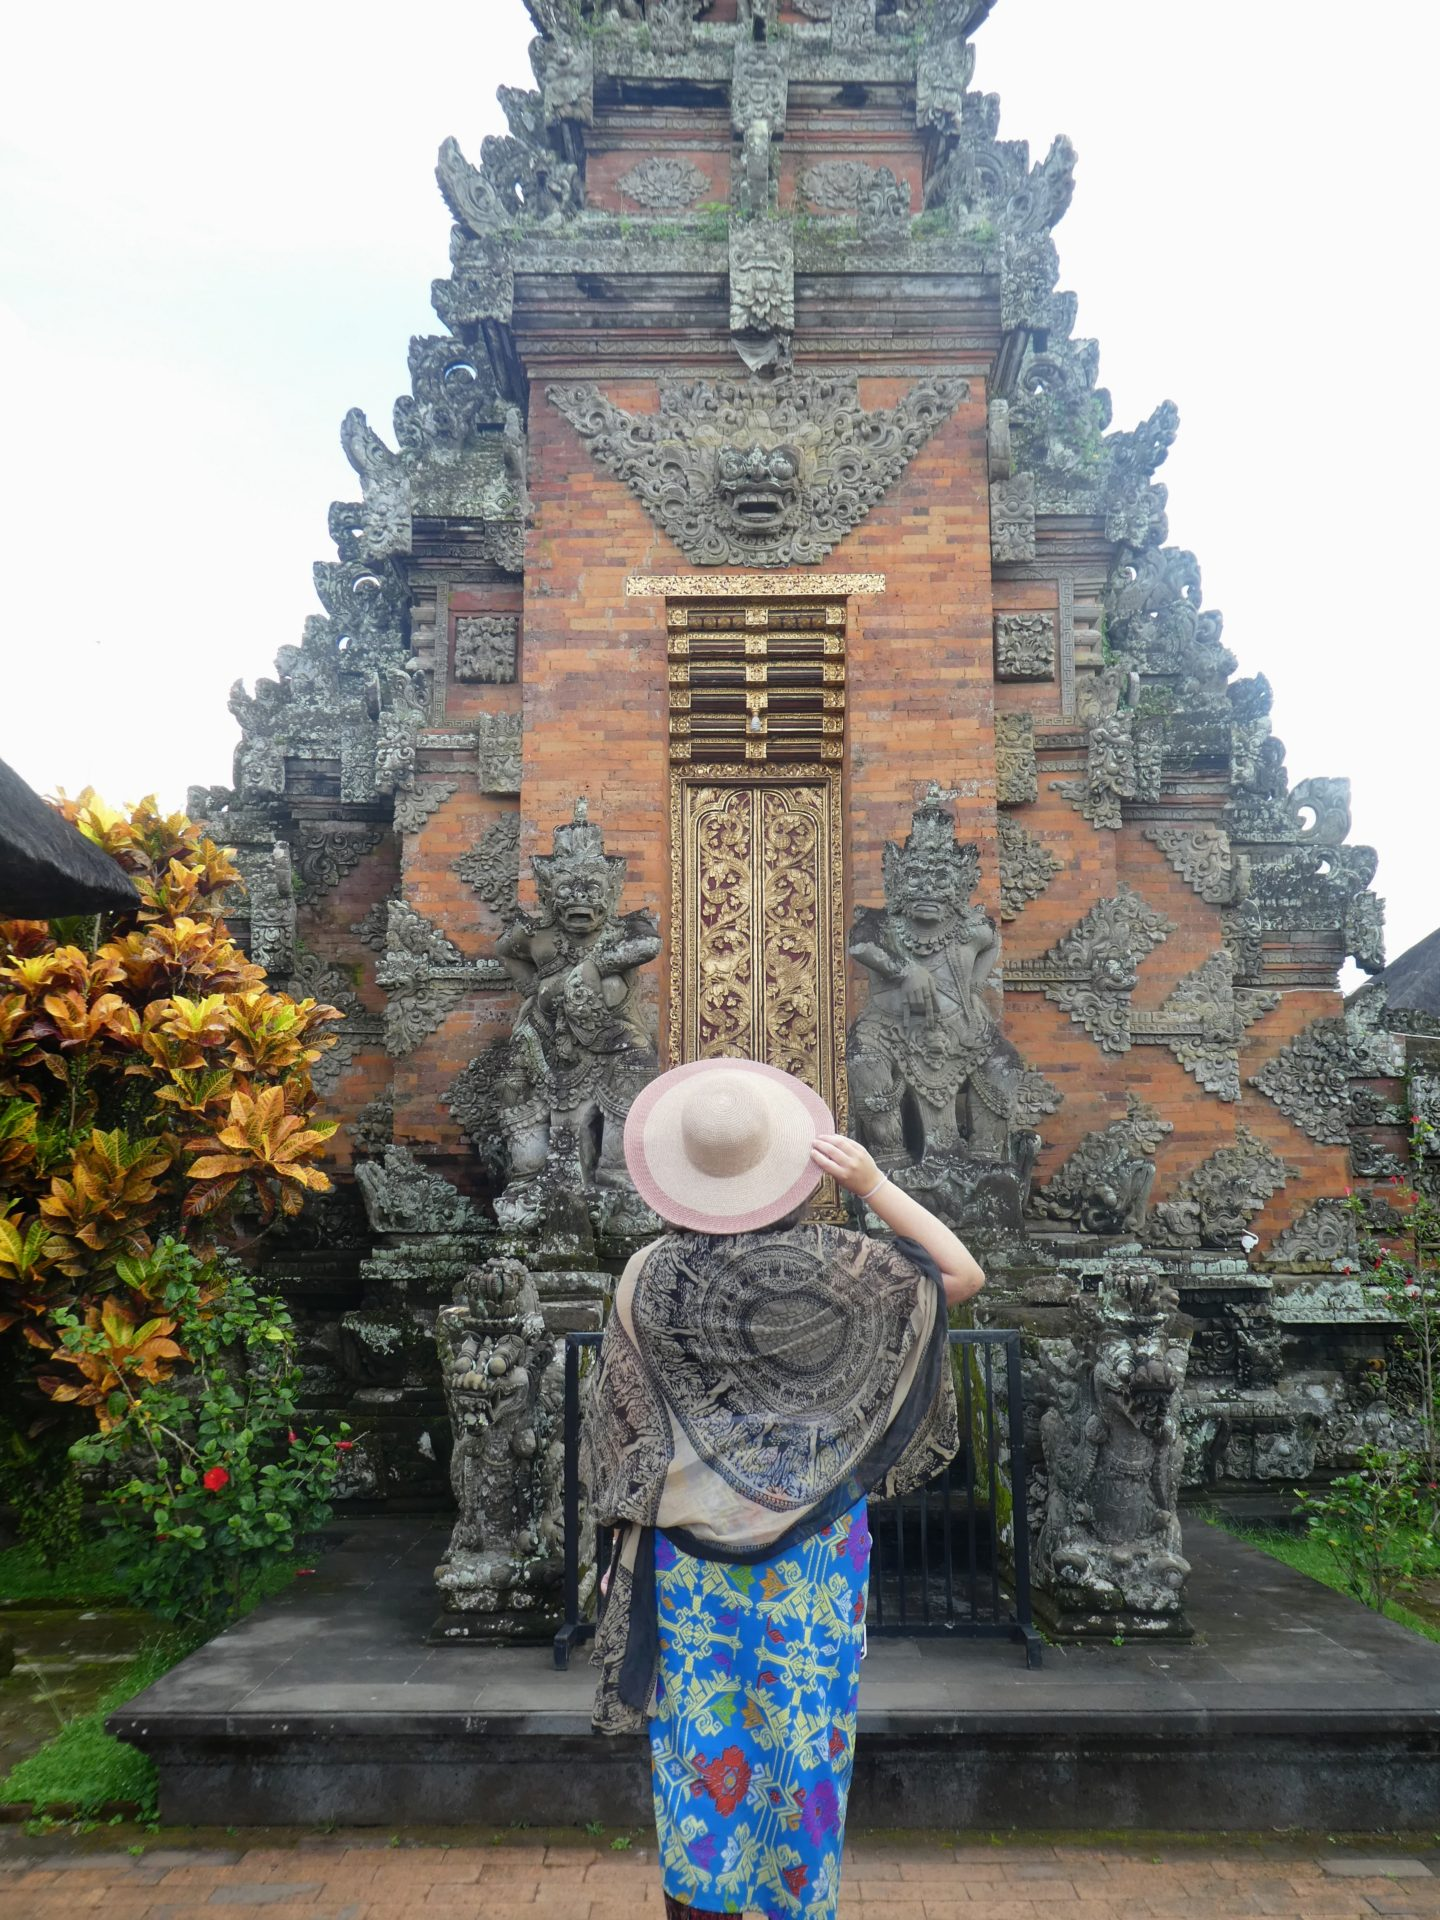 Temple   Photo Diary: Our Day in Bali   Gluten Free Horizons